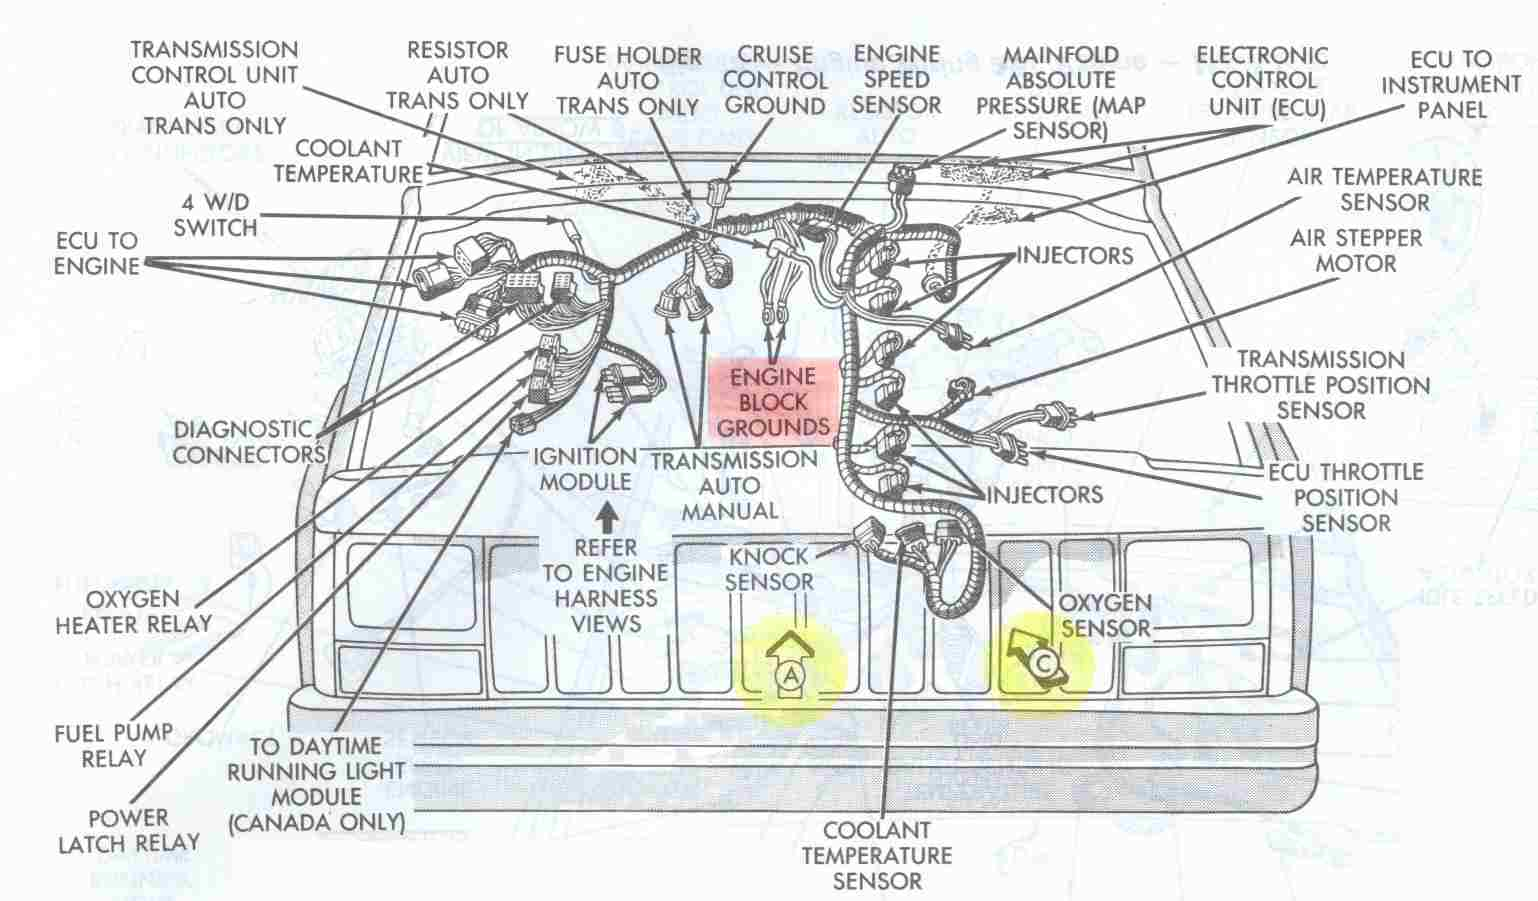 2014 Mustang Backup Lights Wiring Diagram - Iet.fslacademy.uk • on cherokee steering diagram, 1999 jeep wrangler fuse diagram, cherokee wheels, cherokee fuse diagram, cherokee suspension diagram, cherokee coil diagram, cherokee parts diagram, cherokee distributor diagram, cherokee engine diagram,